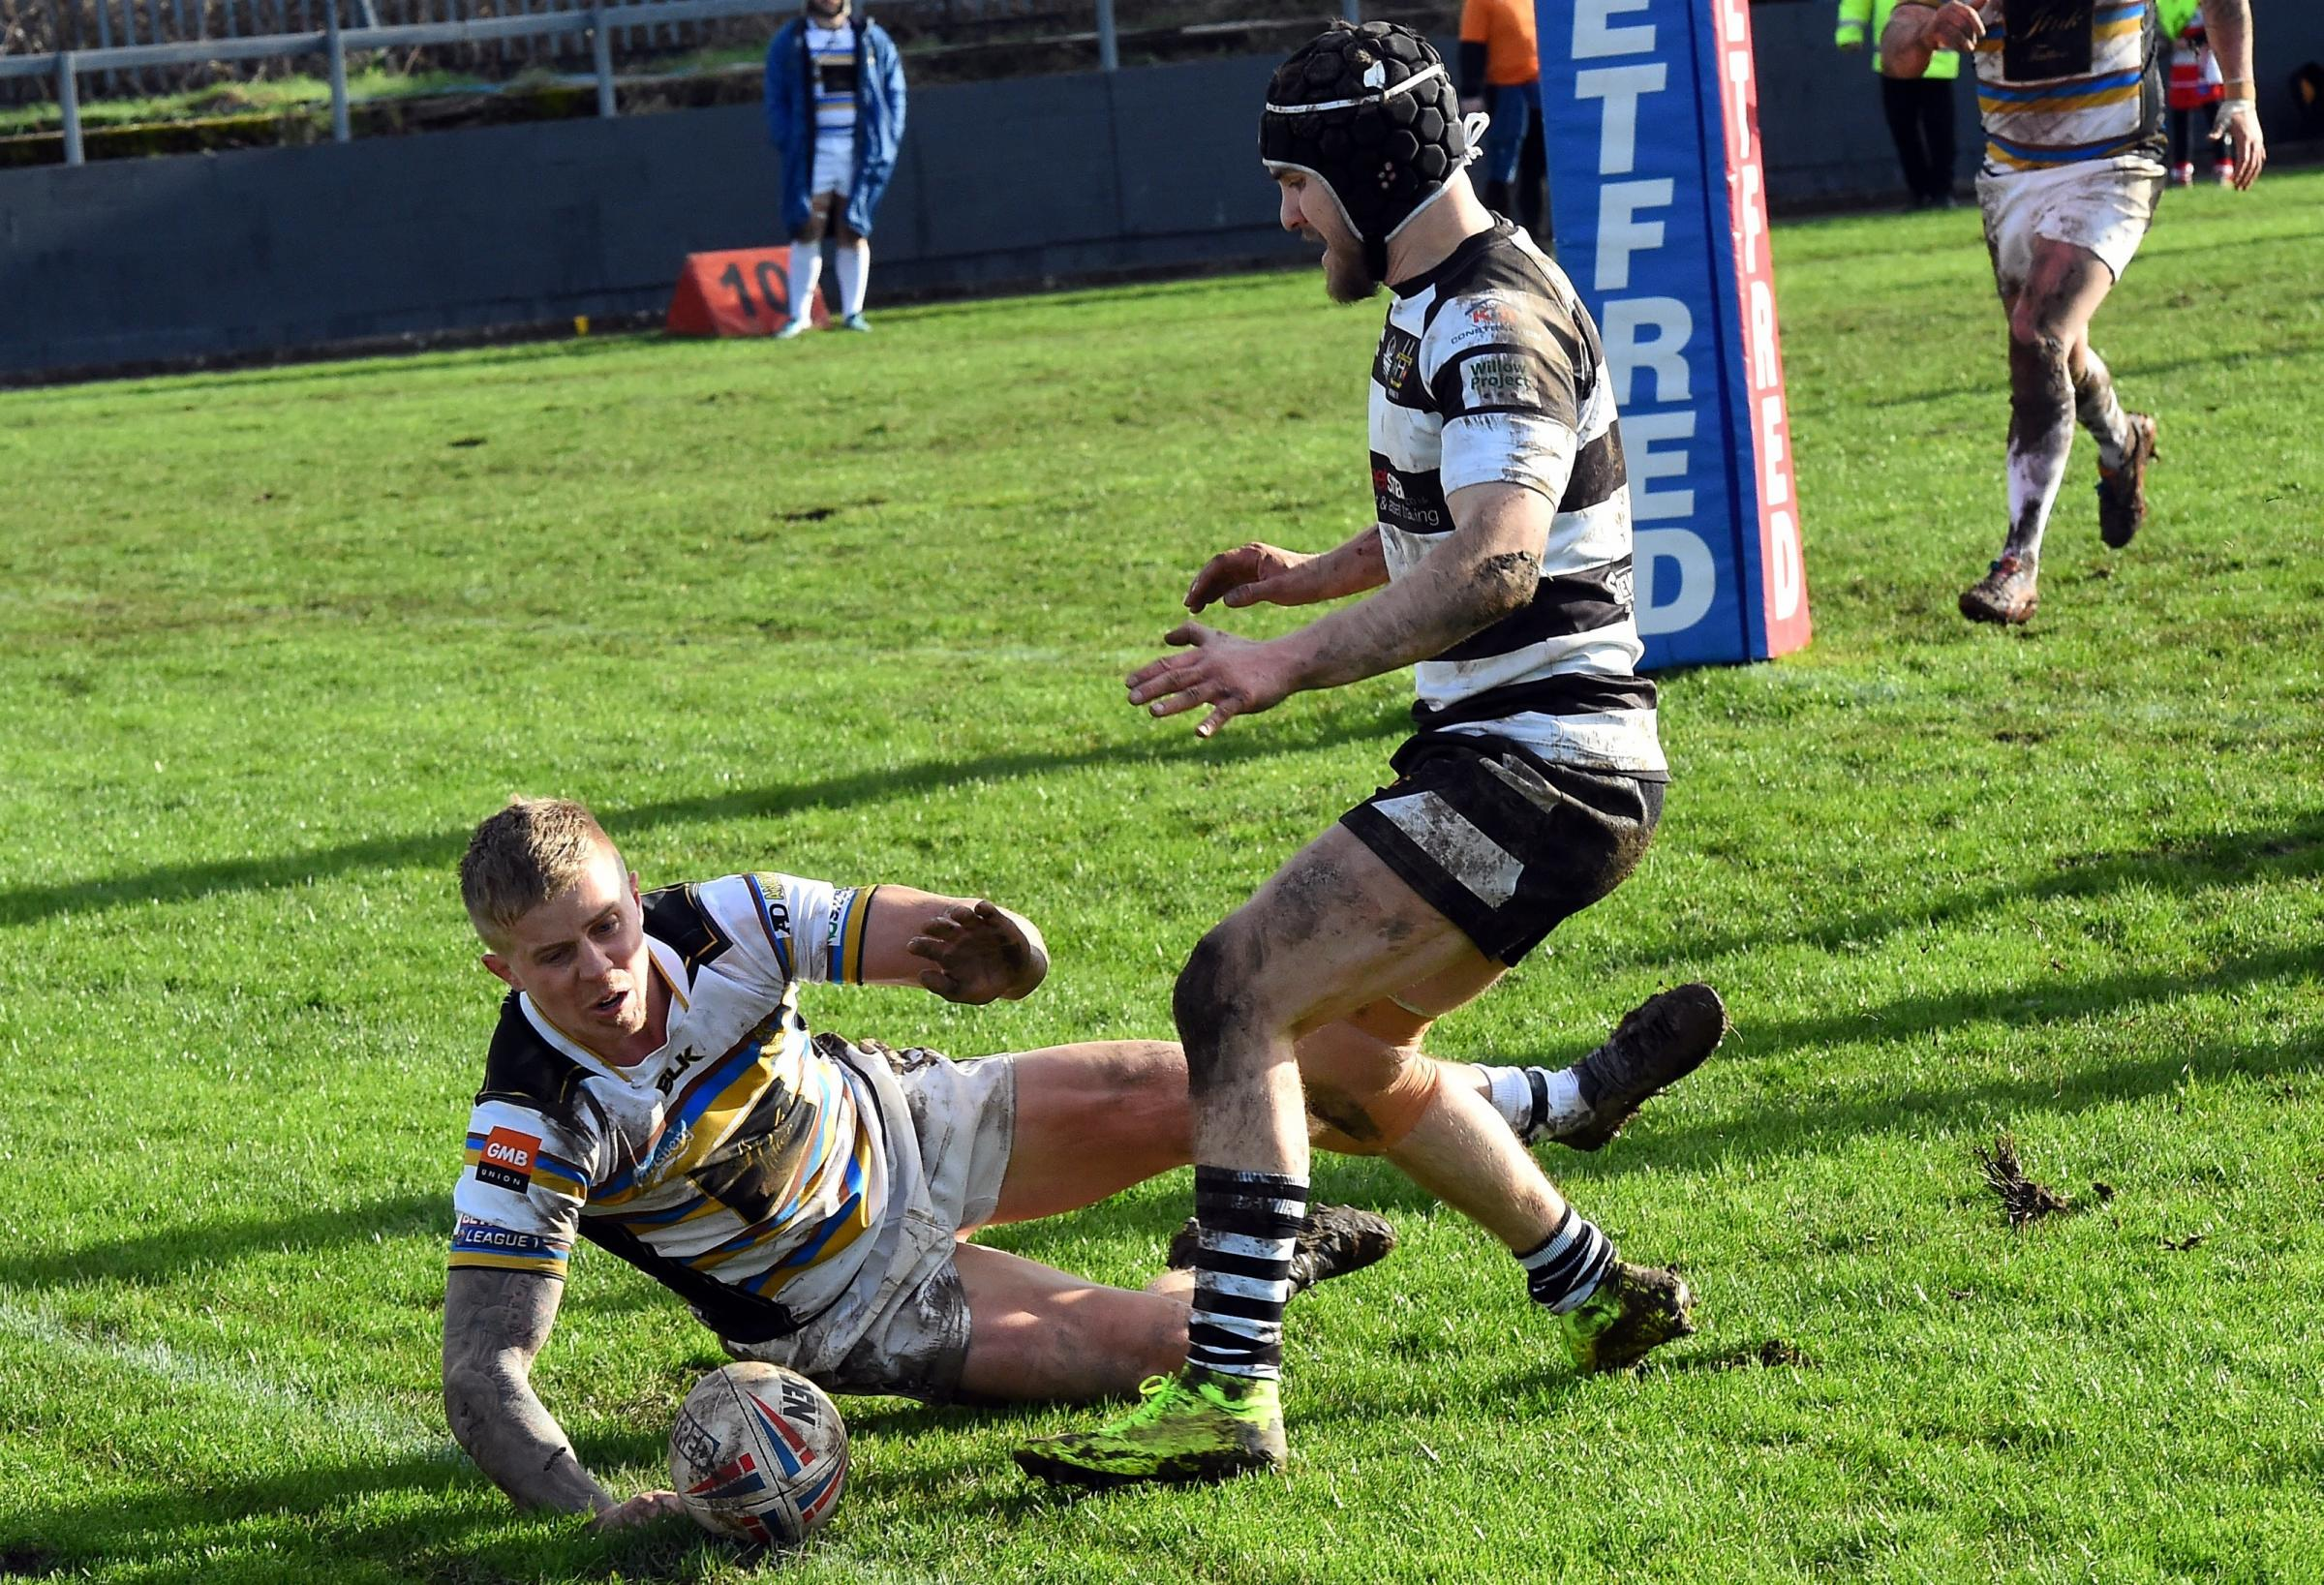 HAT-TRICK HERO: Whitehaven's Callum Phillips